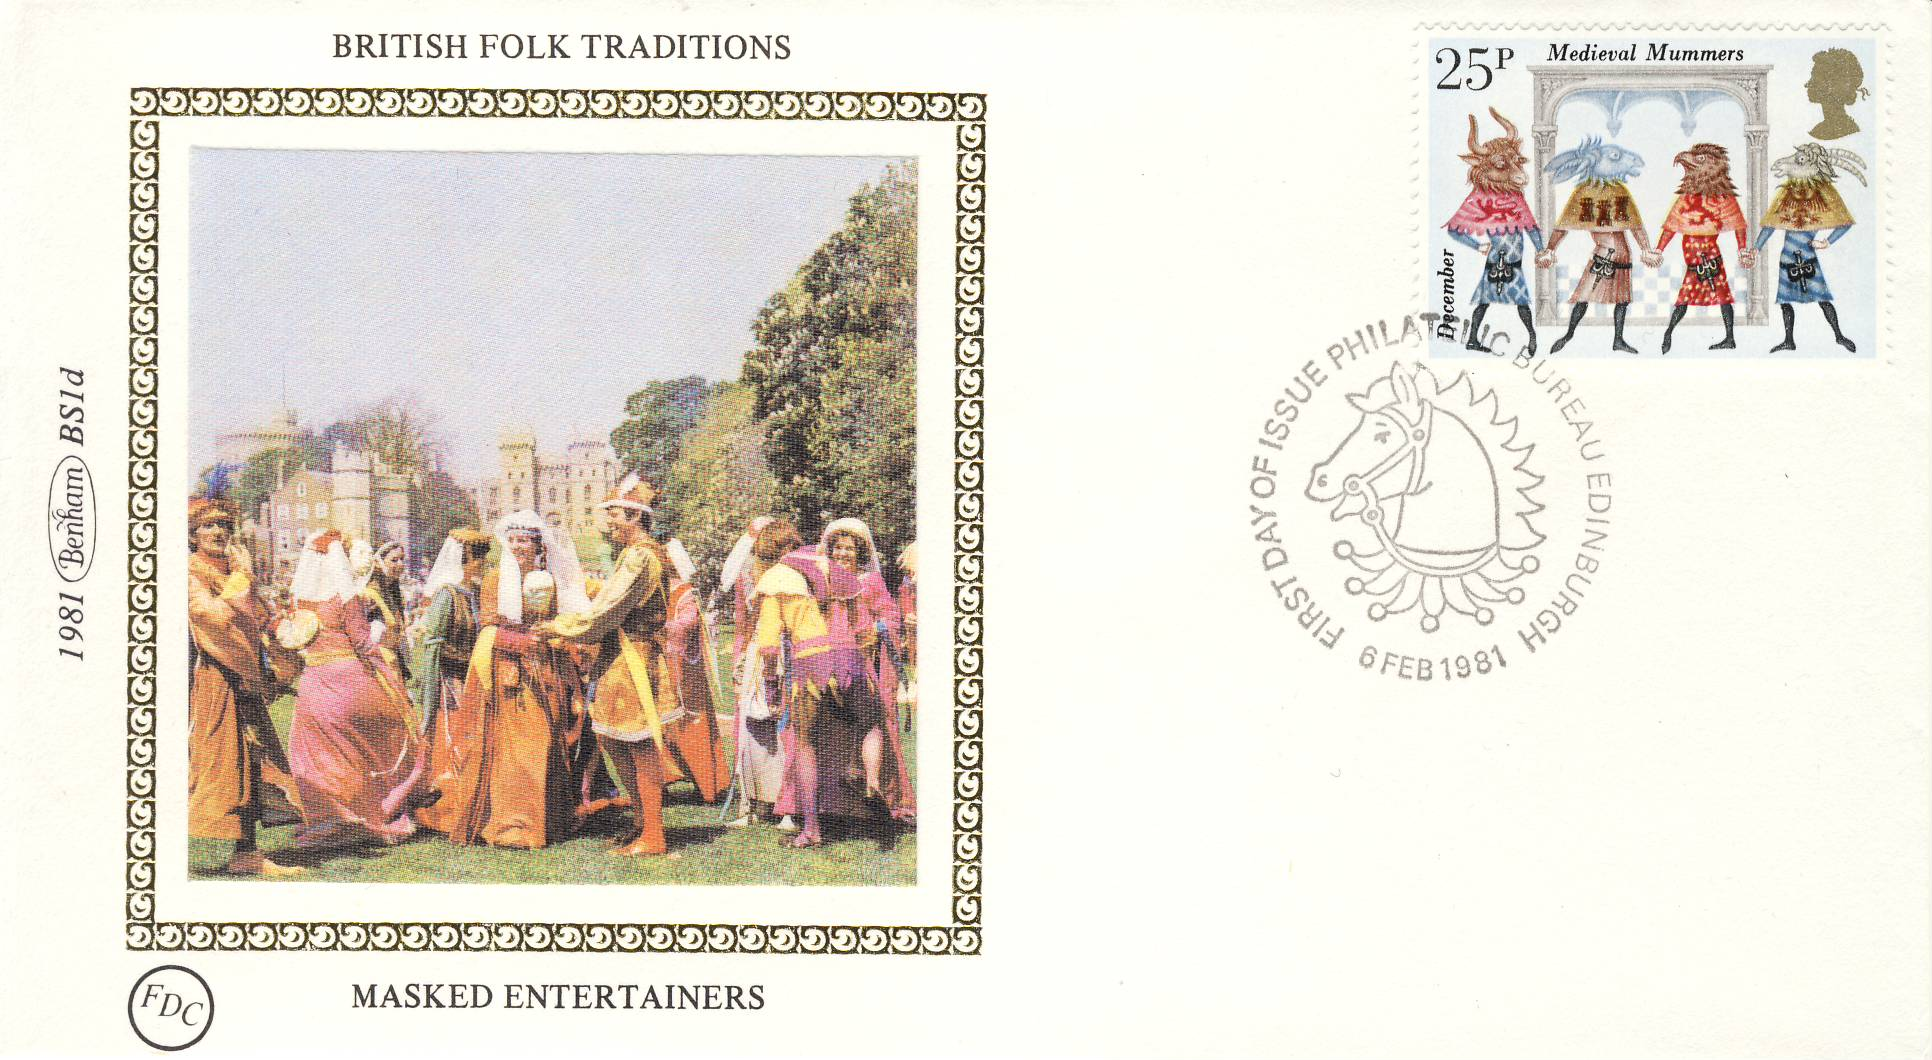 1981 BRITISH FOLK TRADITIONS BS1d MASKED ENTERTAINERS Benham Sm Silk Cover refF497Postmarked fdc Bureau Edinburgh. Very good condition. Unsealed with insert card. Ideal for gift